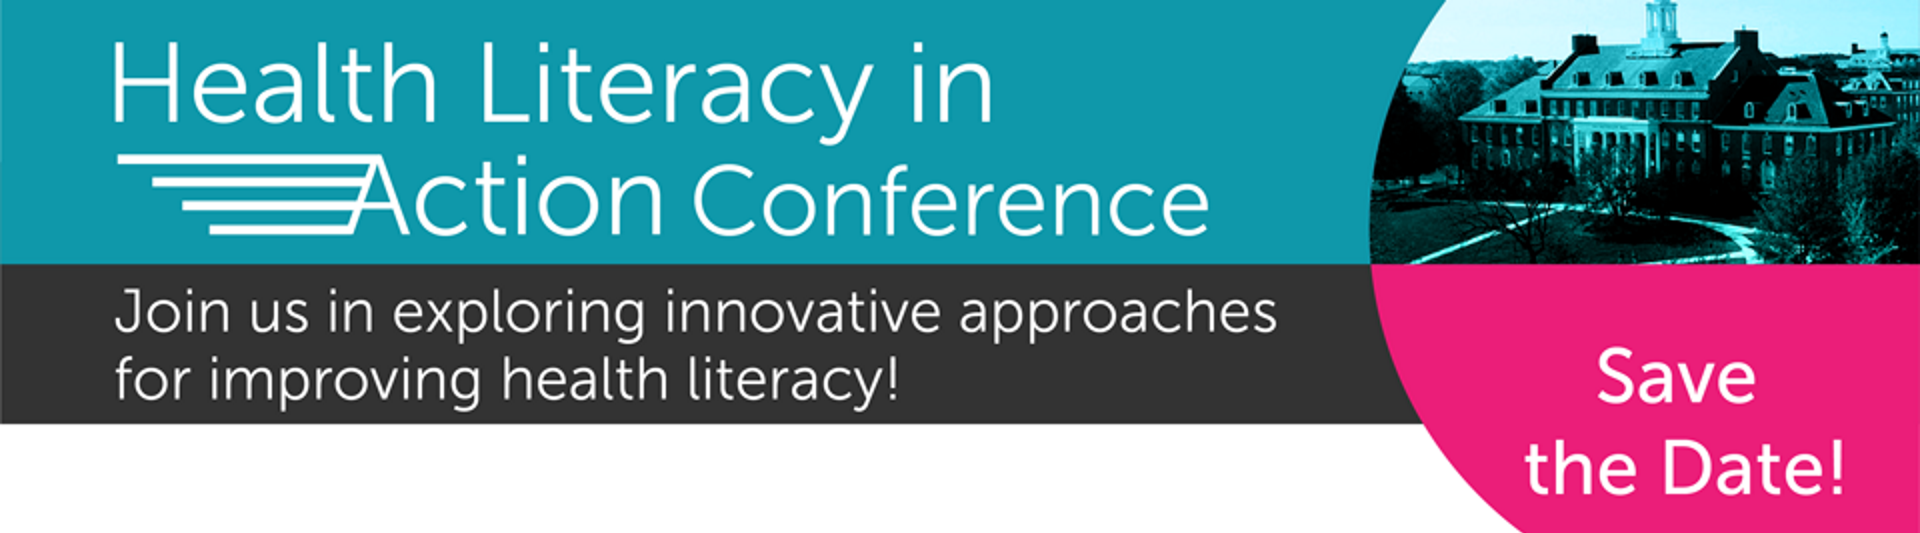 2nd Annual Health Literacy in Action Conference